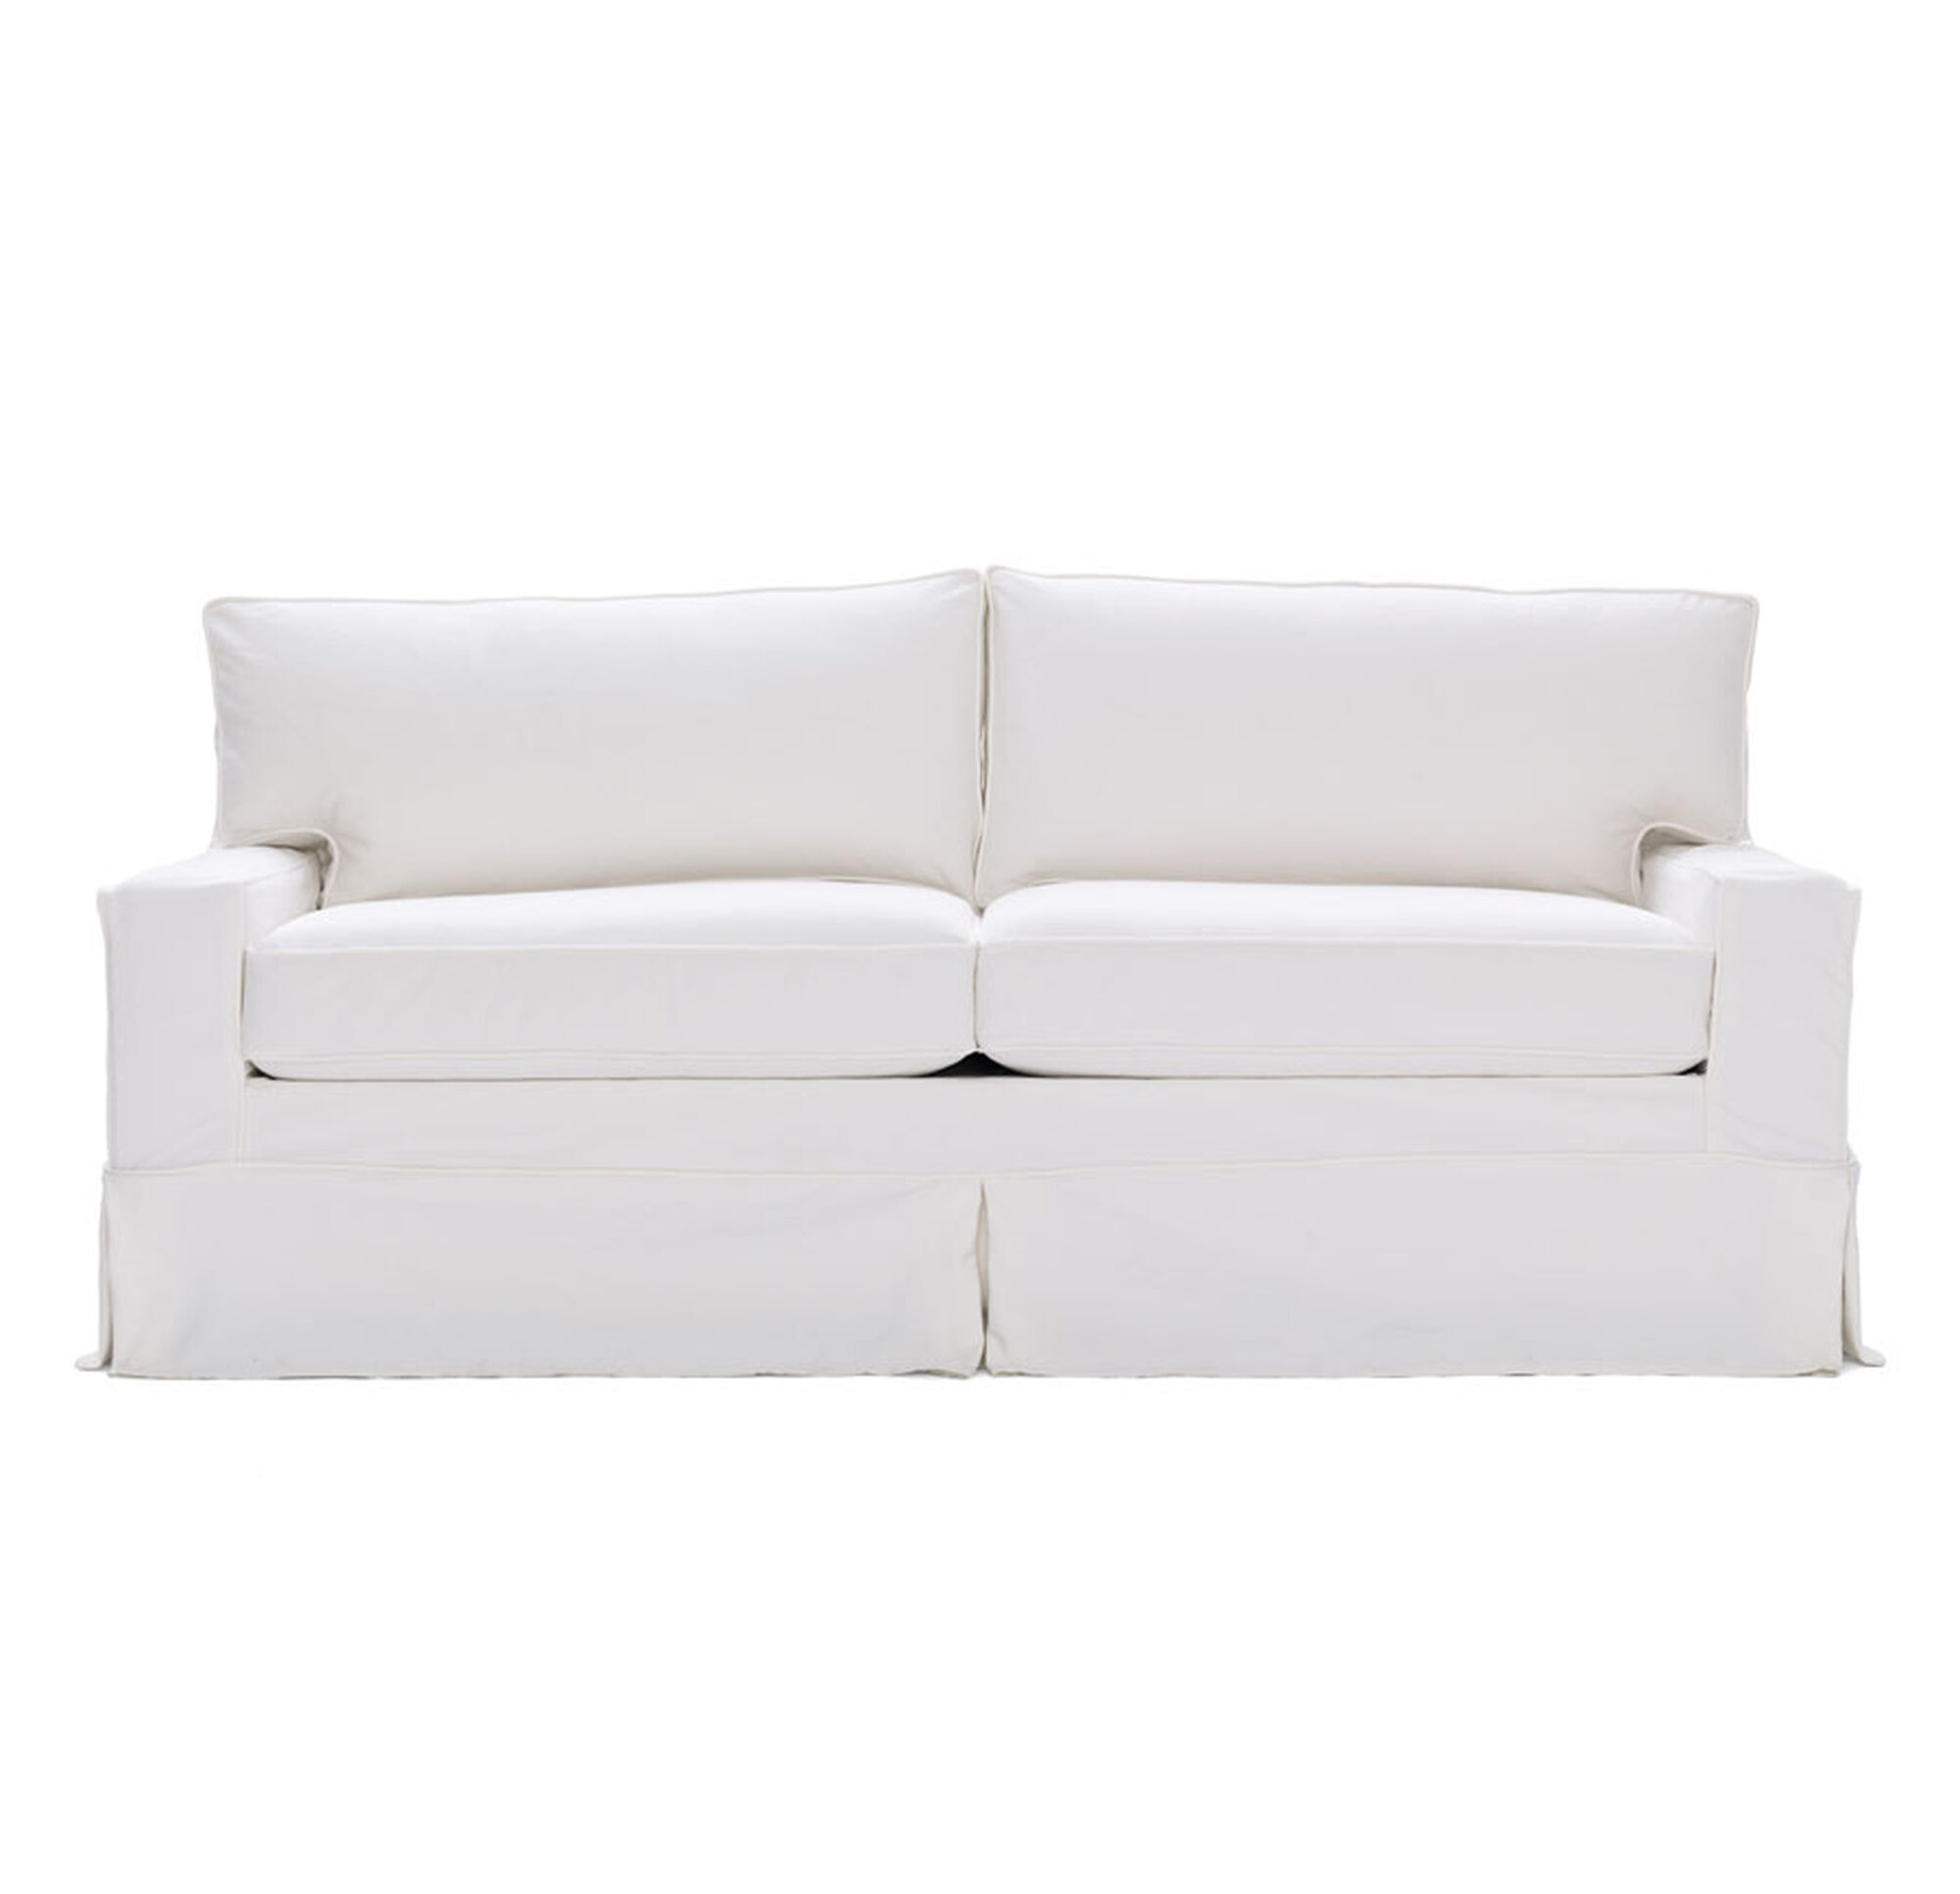 ALEX II SUPER LUXE QUEEN SLIPCOVER SLEEPER SOFA